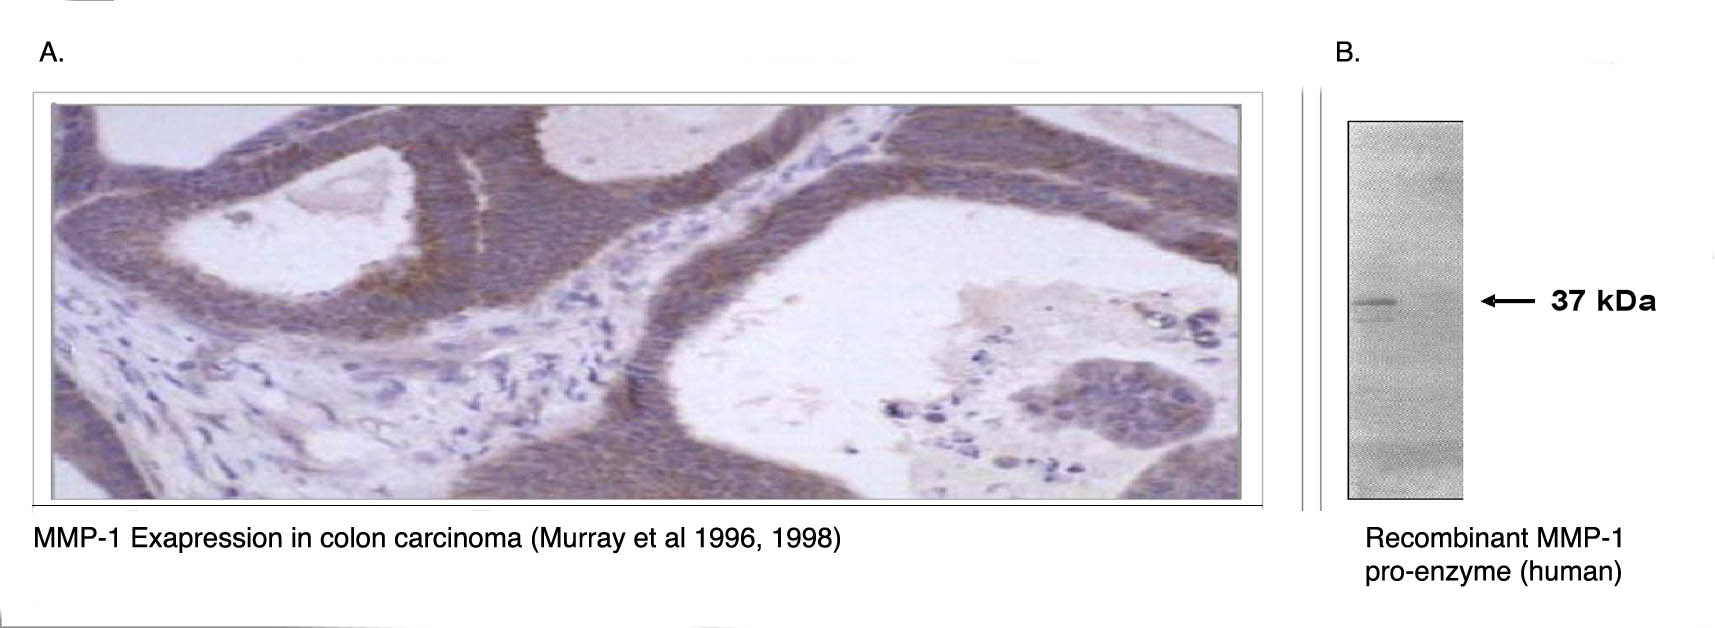 """"""" A. Immunohistochemical staining using MMP-1 antibody (Cat. No. X2053M) on colon carcinoma tissue section. B. Western blot using MMP-1 antibody on recombinant human MMP-1 proenzyme (400 ng/lane)."""""""